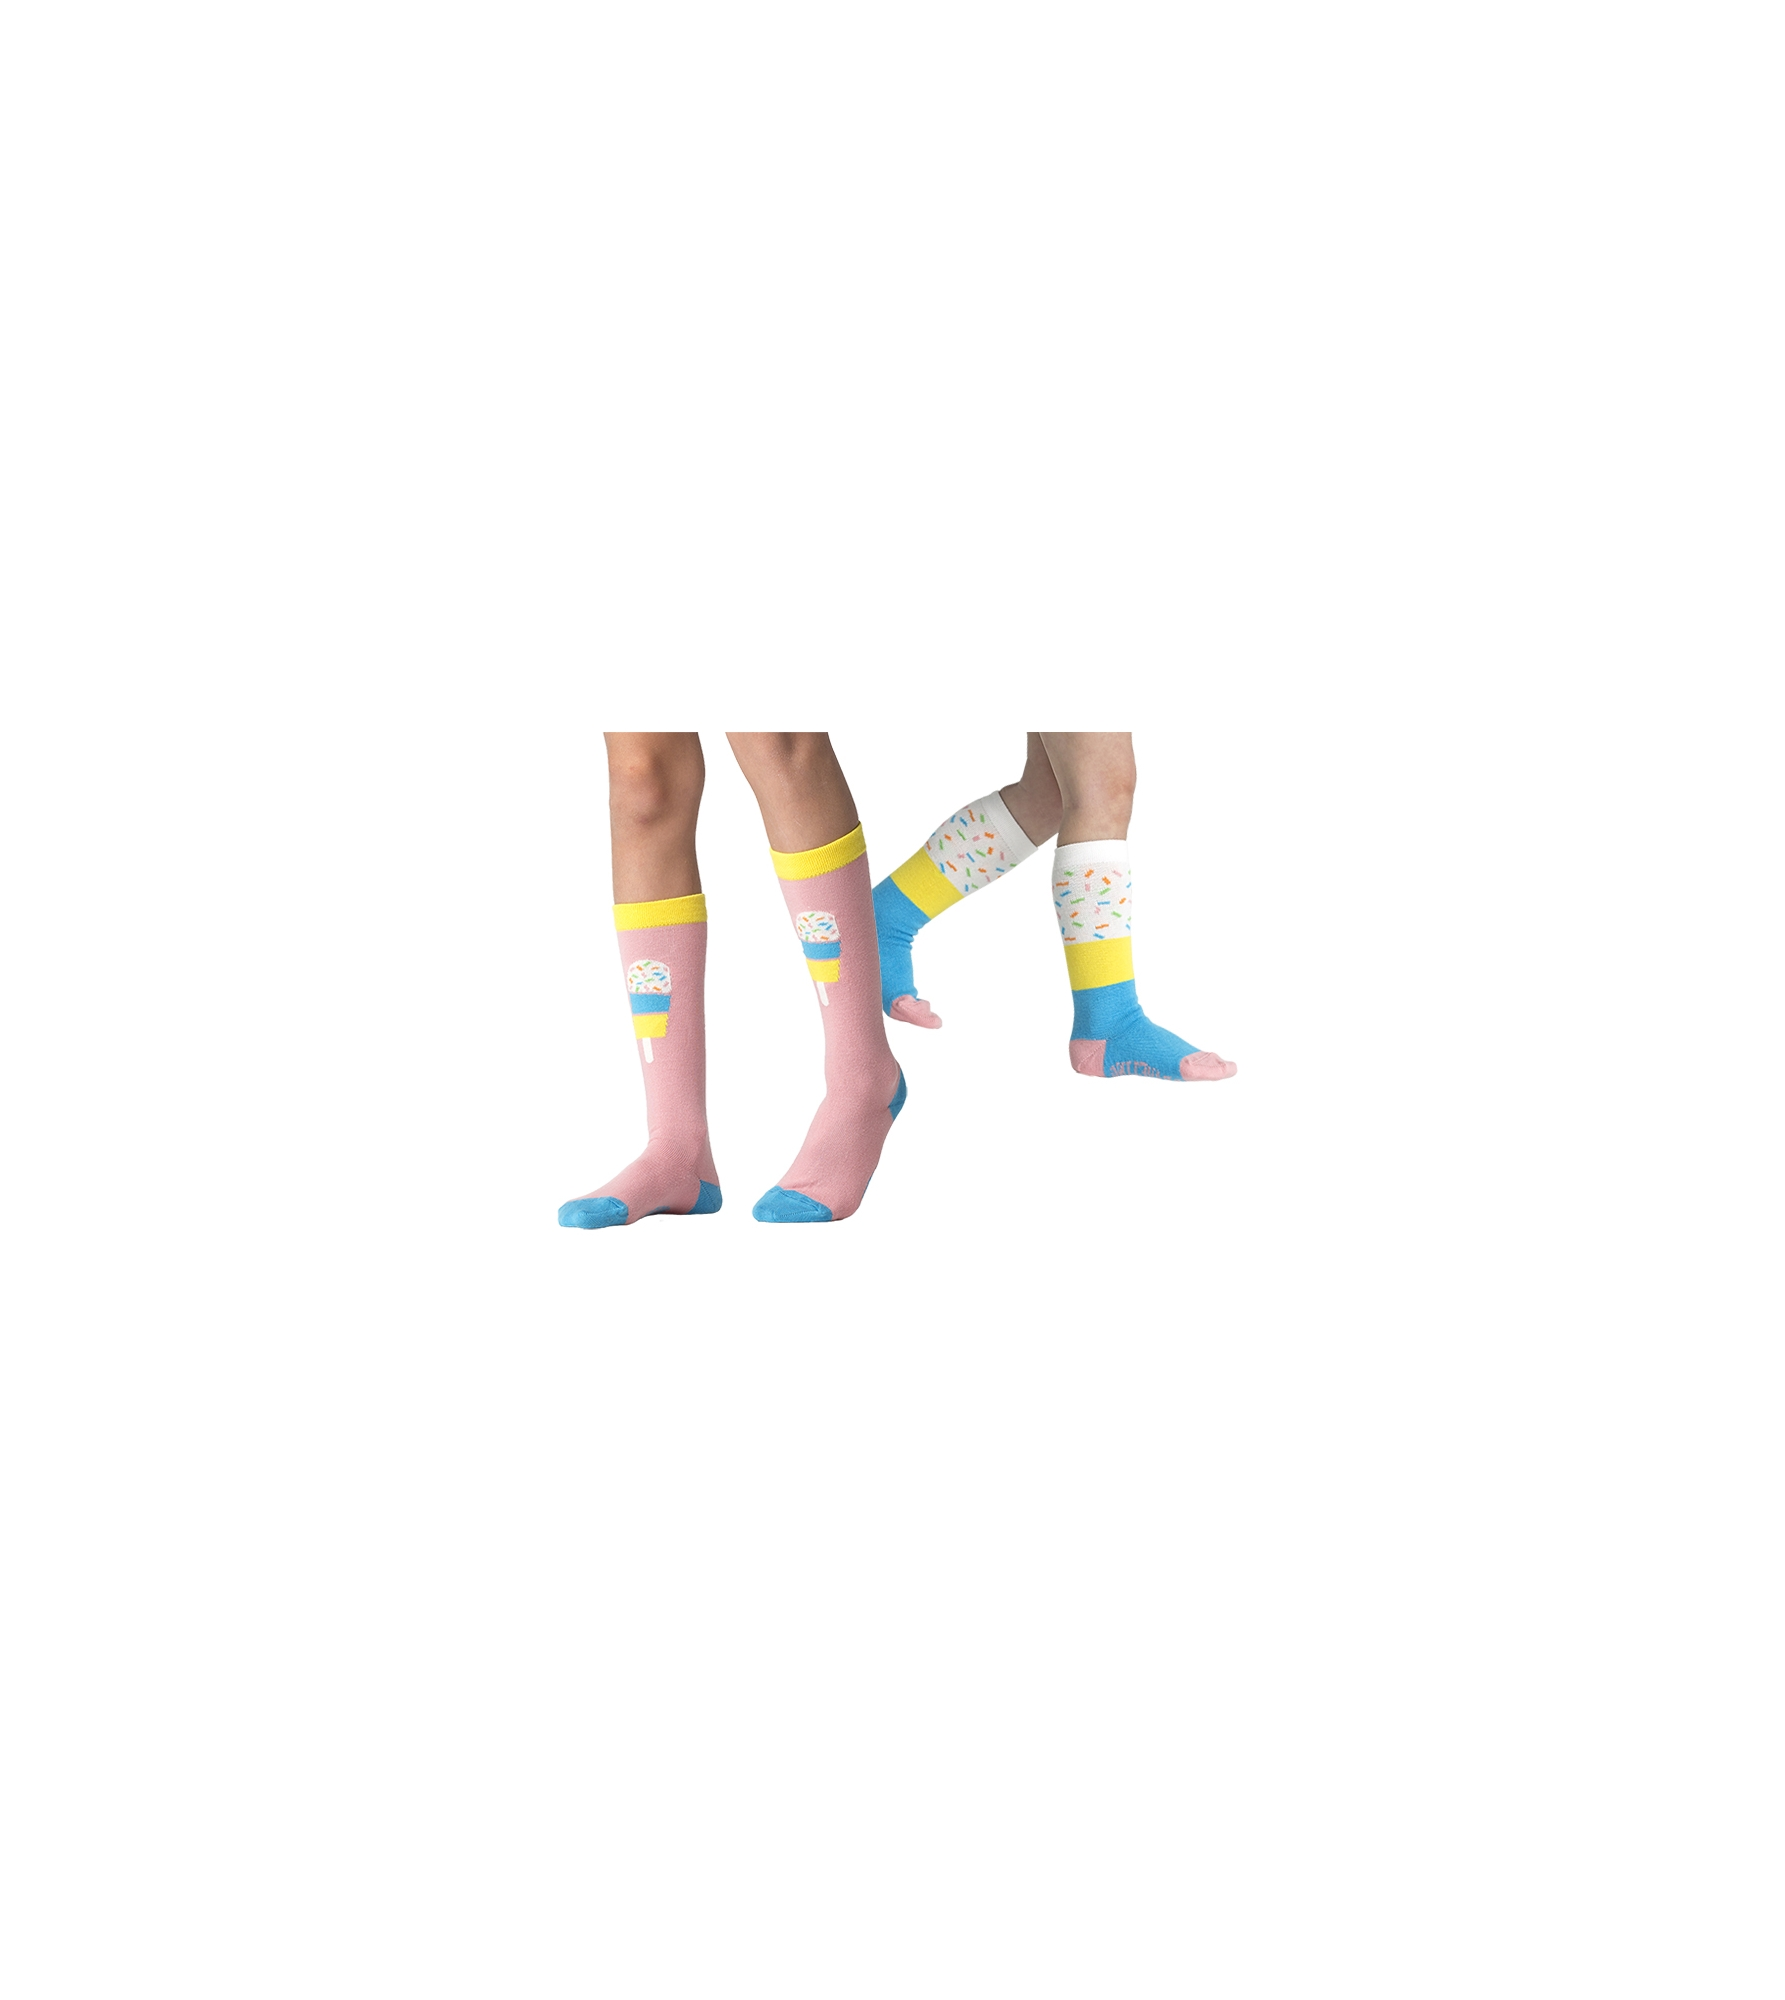 CUTOUT_Lolly Socks.png